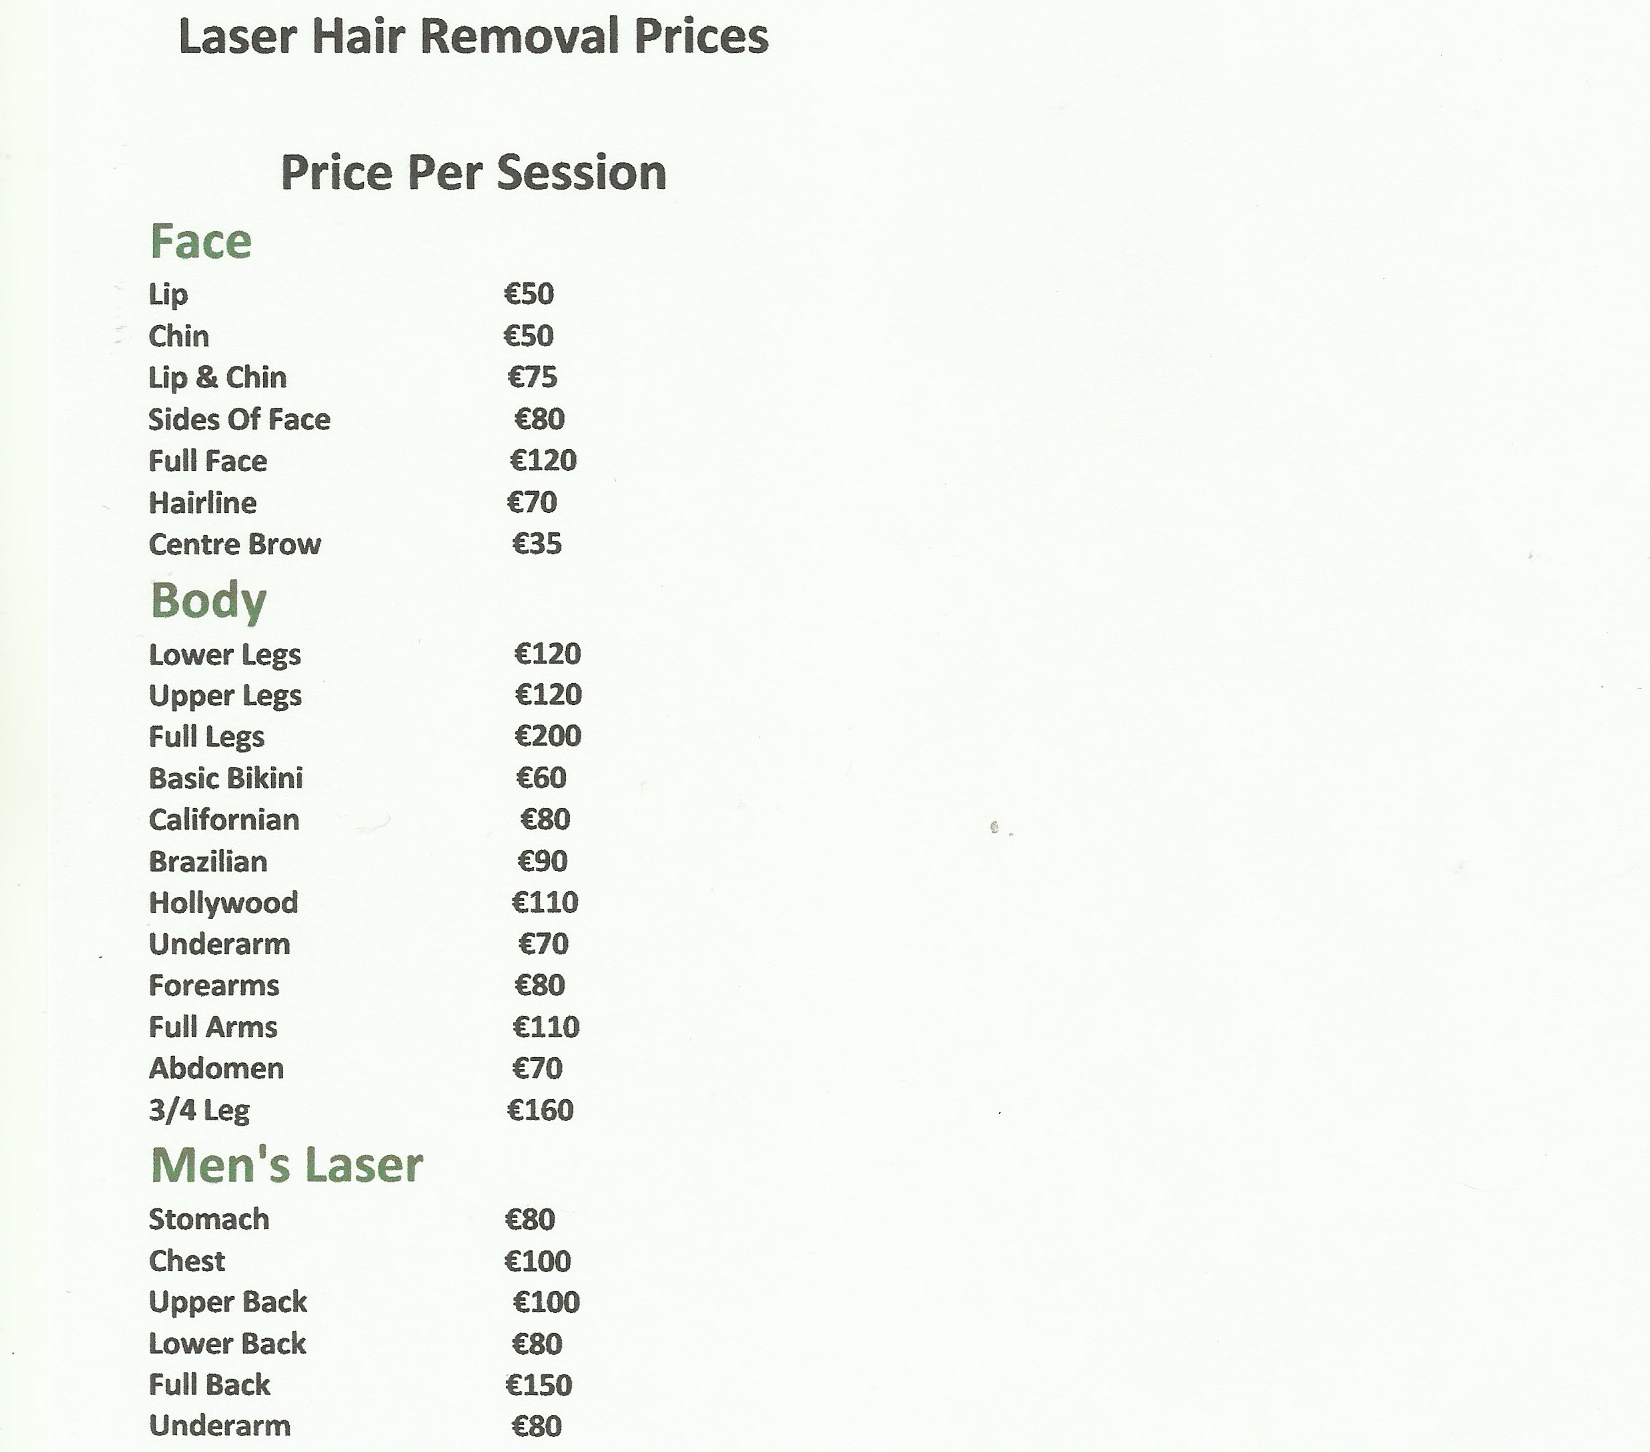 Laser Hair Removal Price List